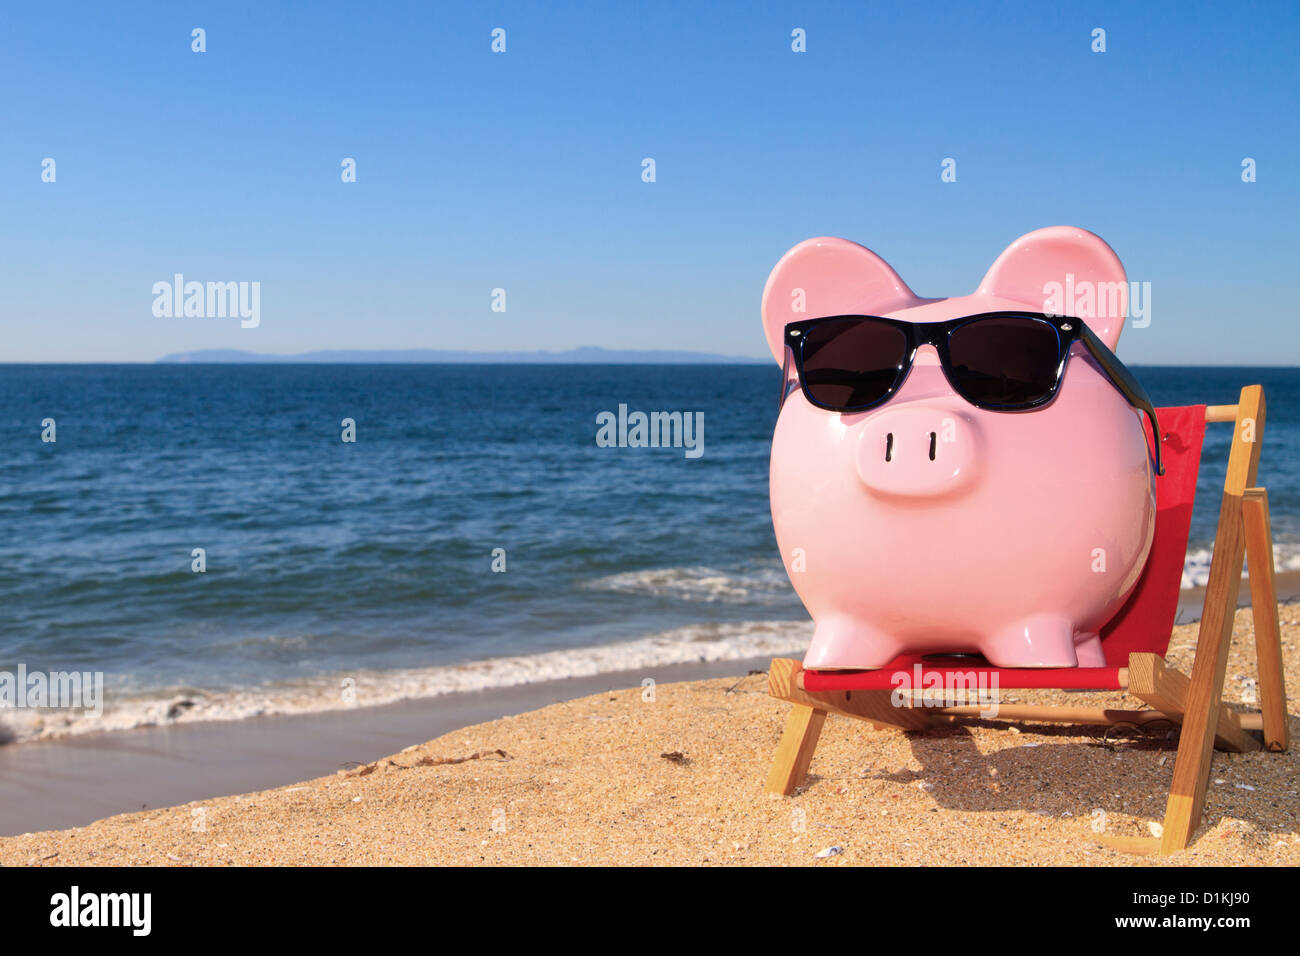 Pink piggy bank on a beach in a deck chair wearing sunglasses with golden sand a blue ocean and vivid blue sky - Stock Image